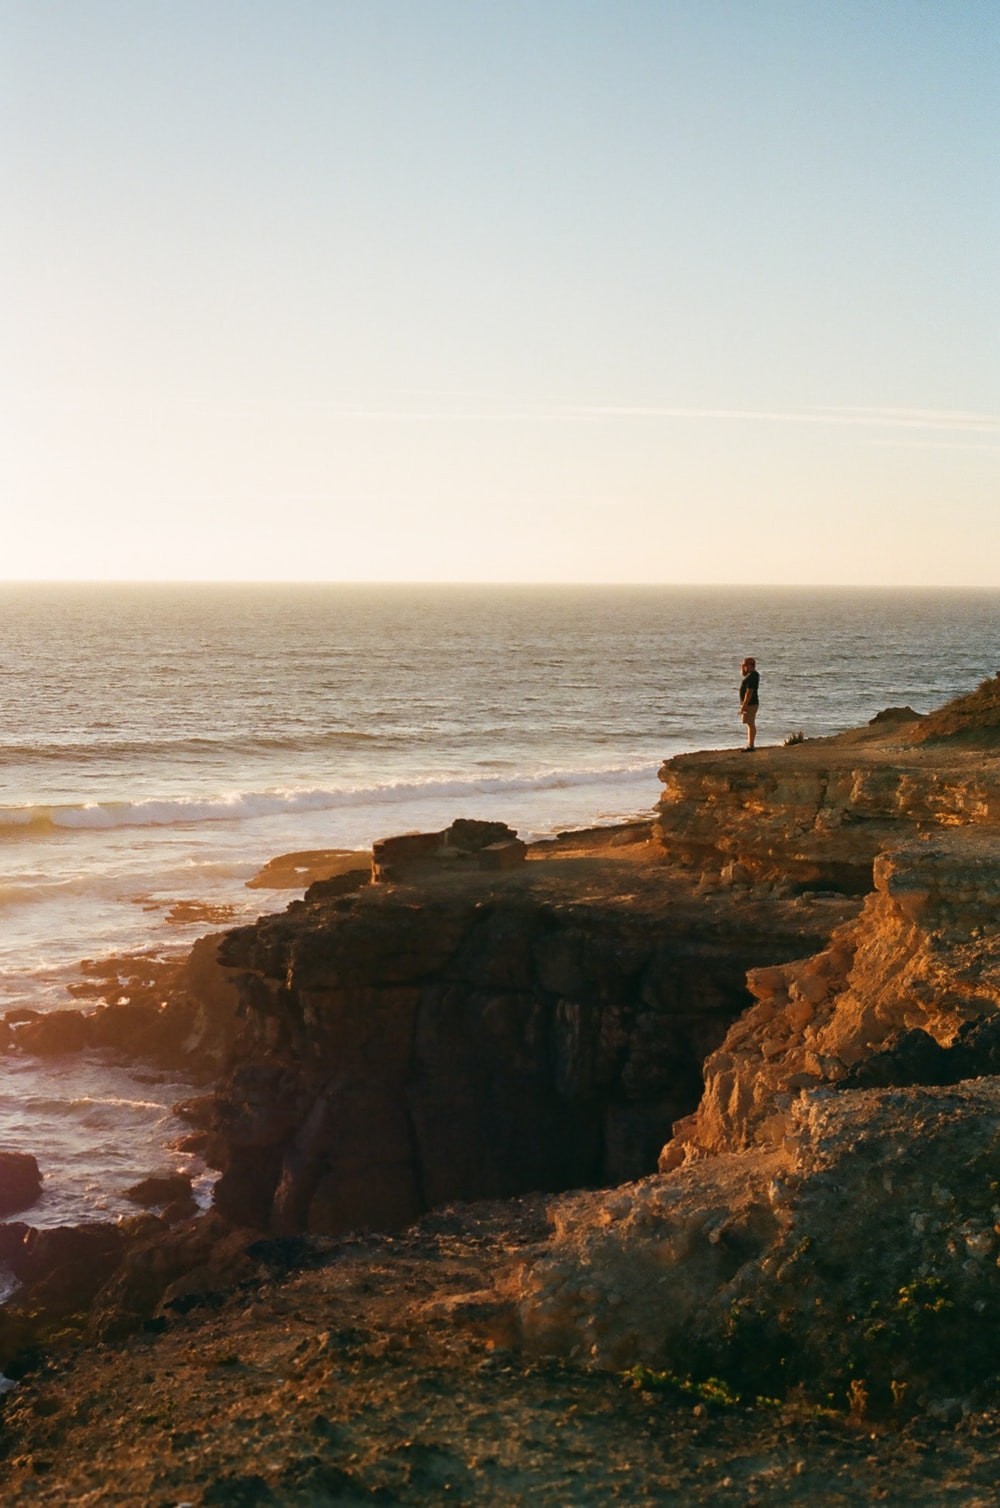 person standing on rock formation near sea during daytime